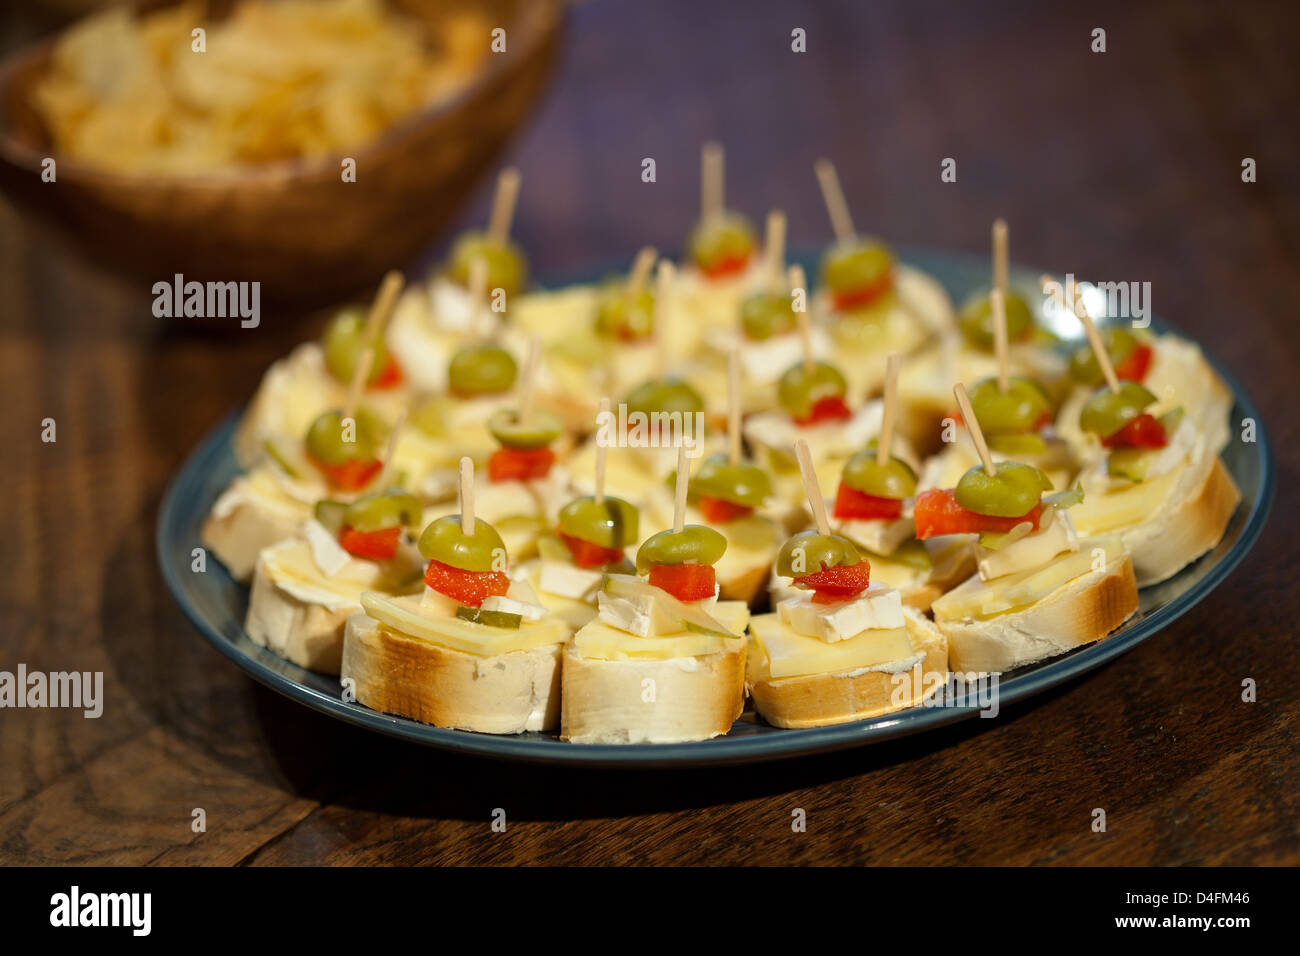 Canapes at party - Stock Image